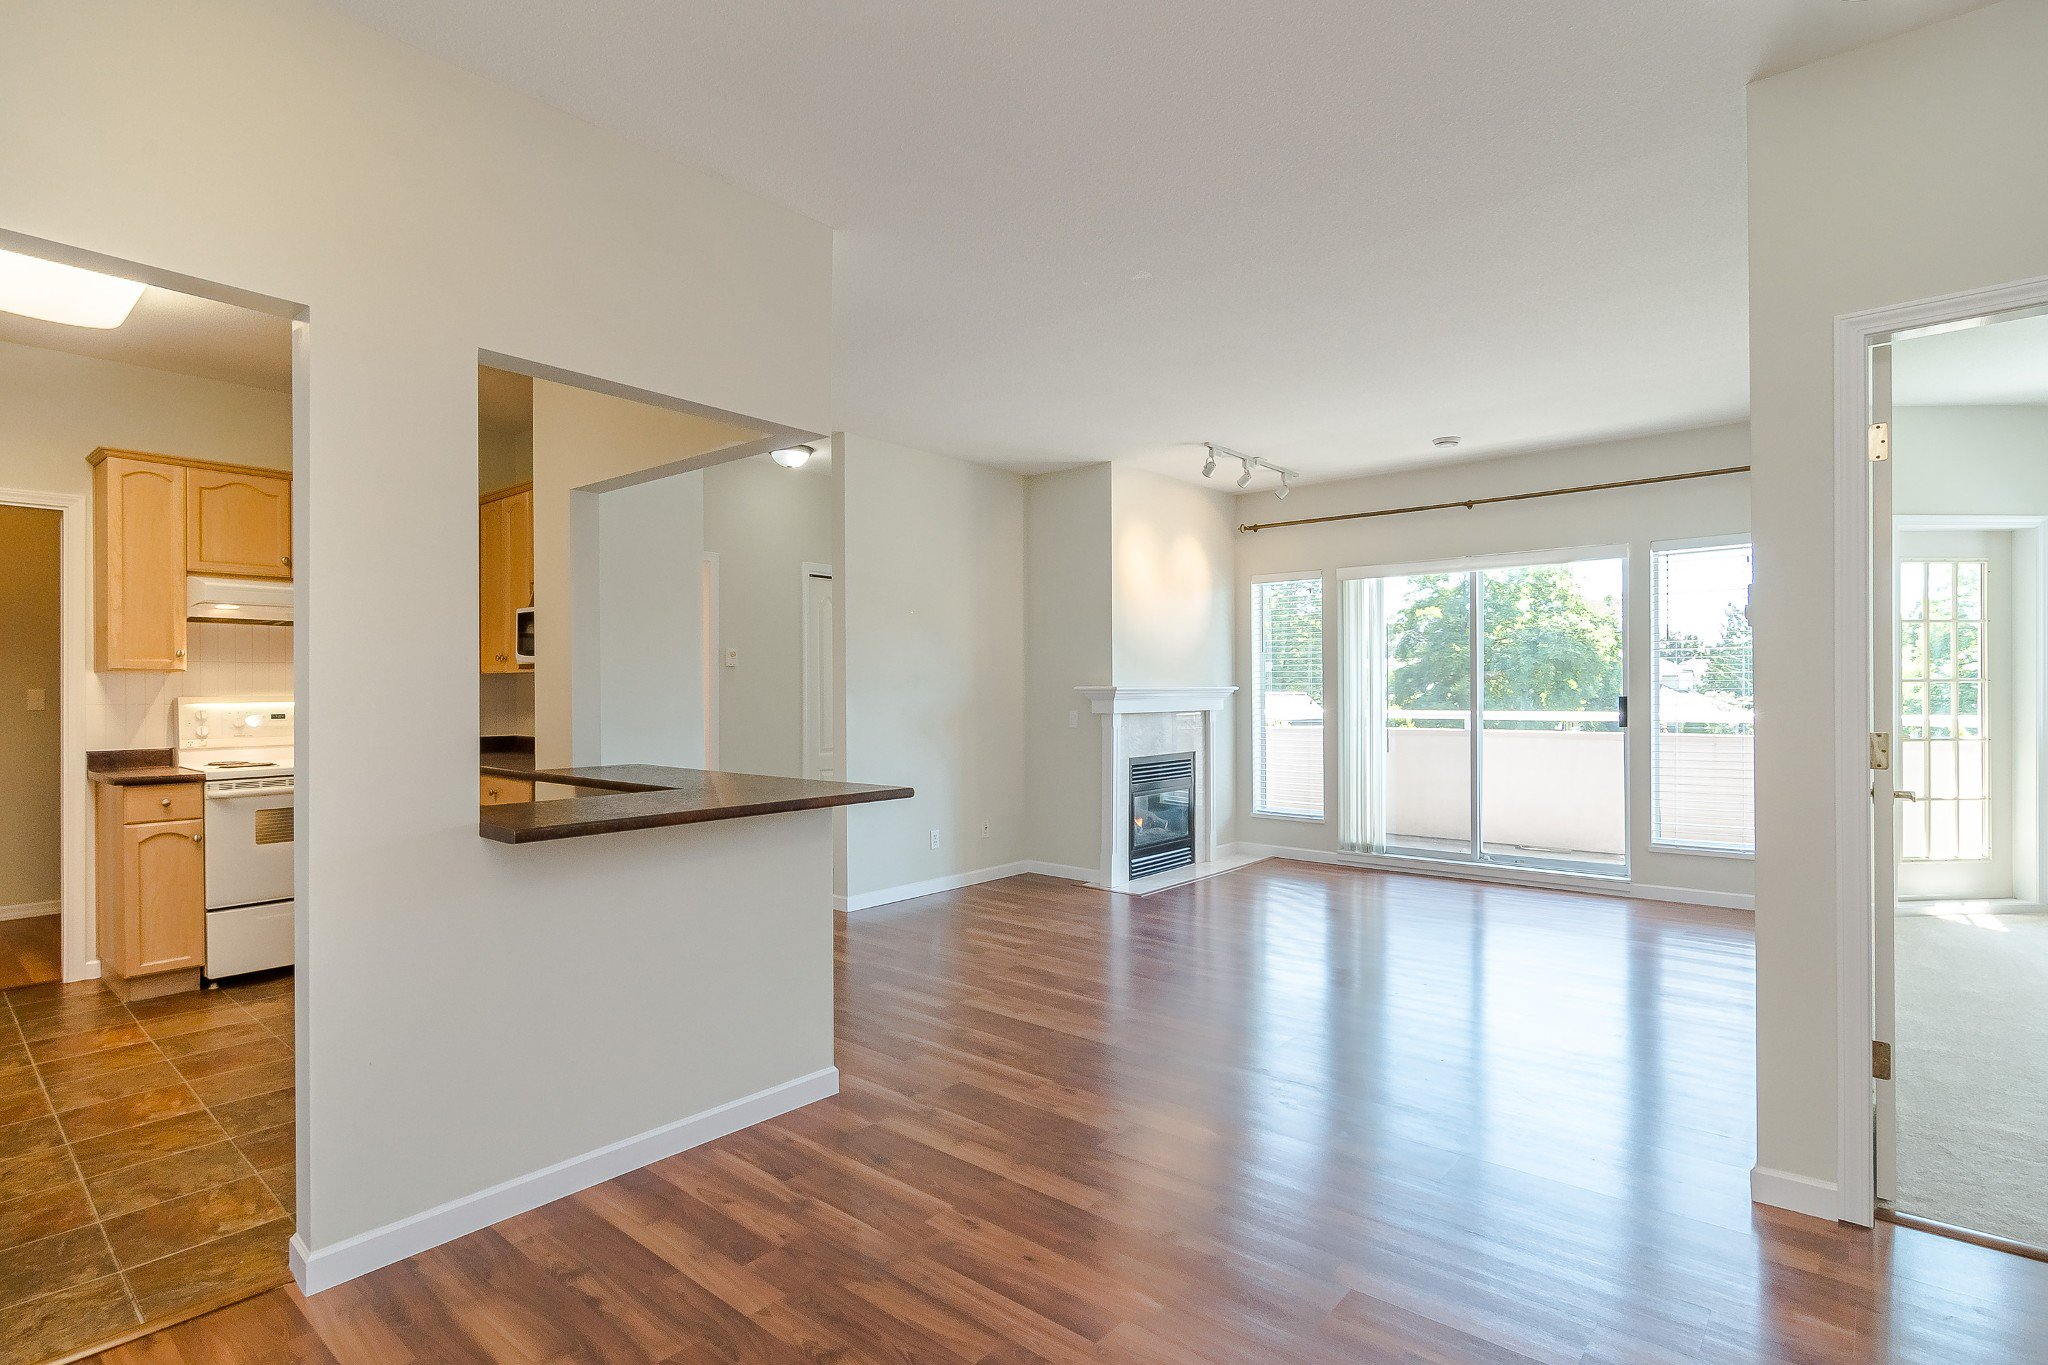 Main Photo: 209 21975 49 Avenue in Langley: Murrayville Condo for sale : MLS®# r2390189